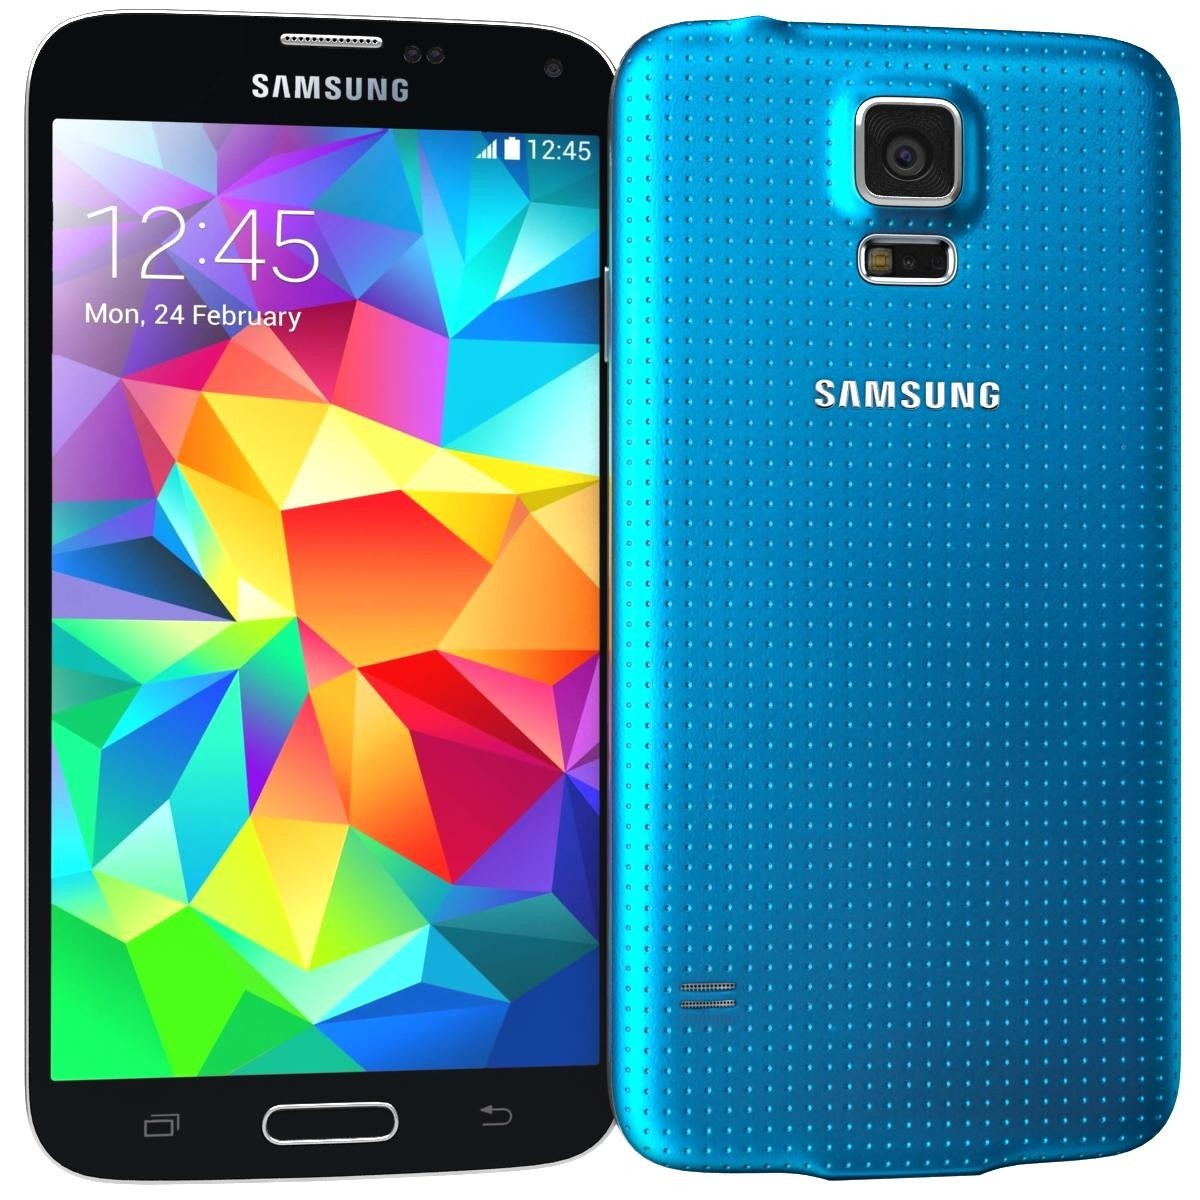 samsung galaxy s5 16gb sm g900 android smartphone unlocked gsm blue mint condition used. Black Bedroom Furniture Sets. Home Design Ideas